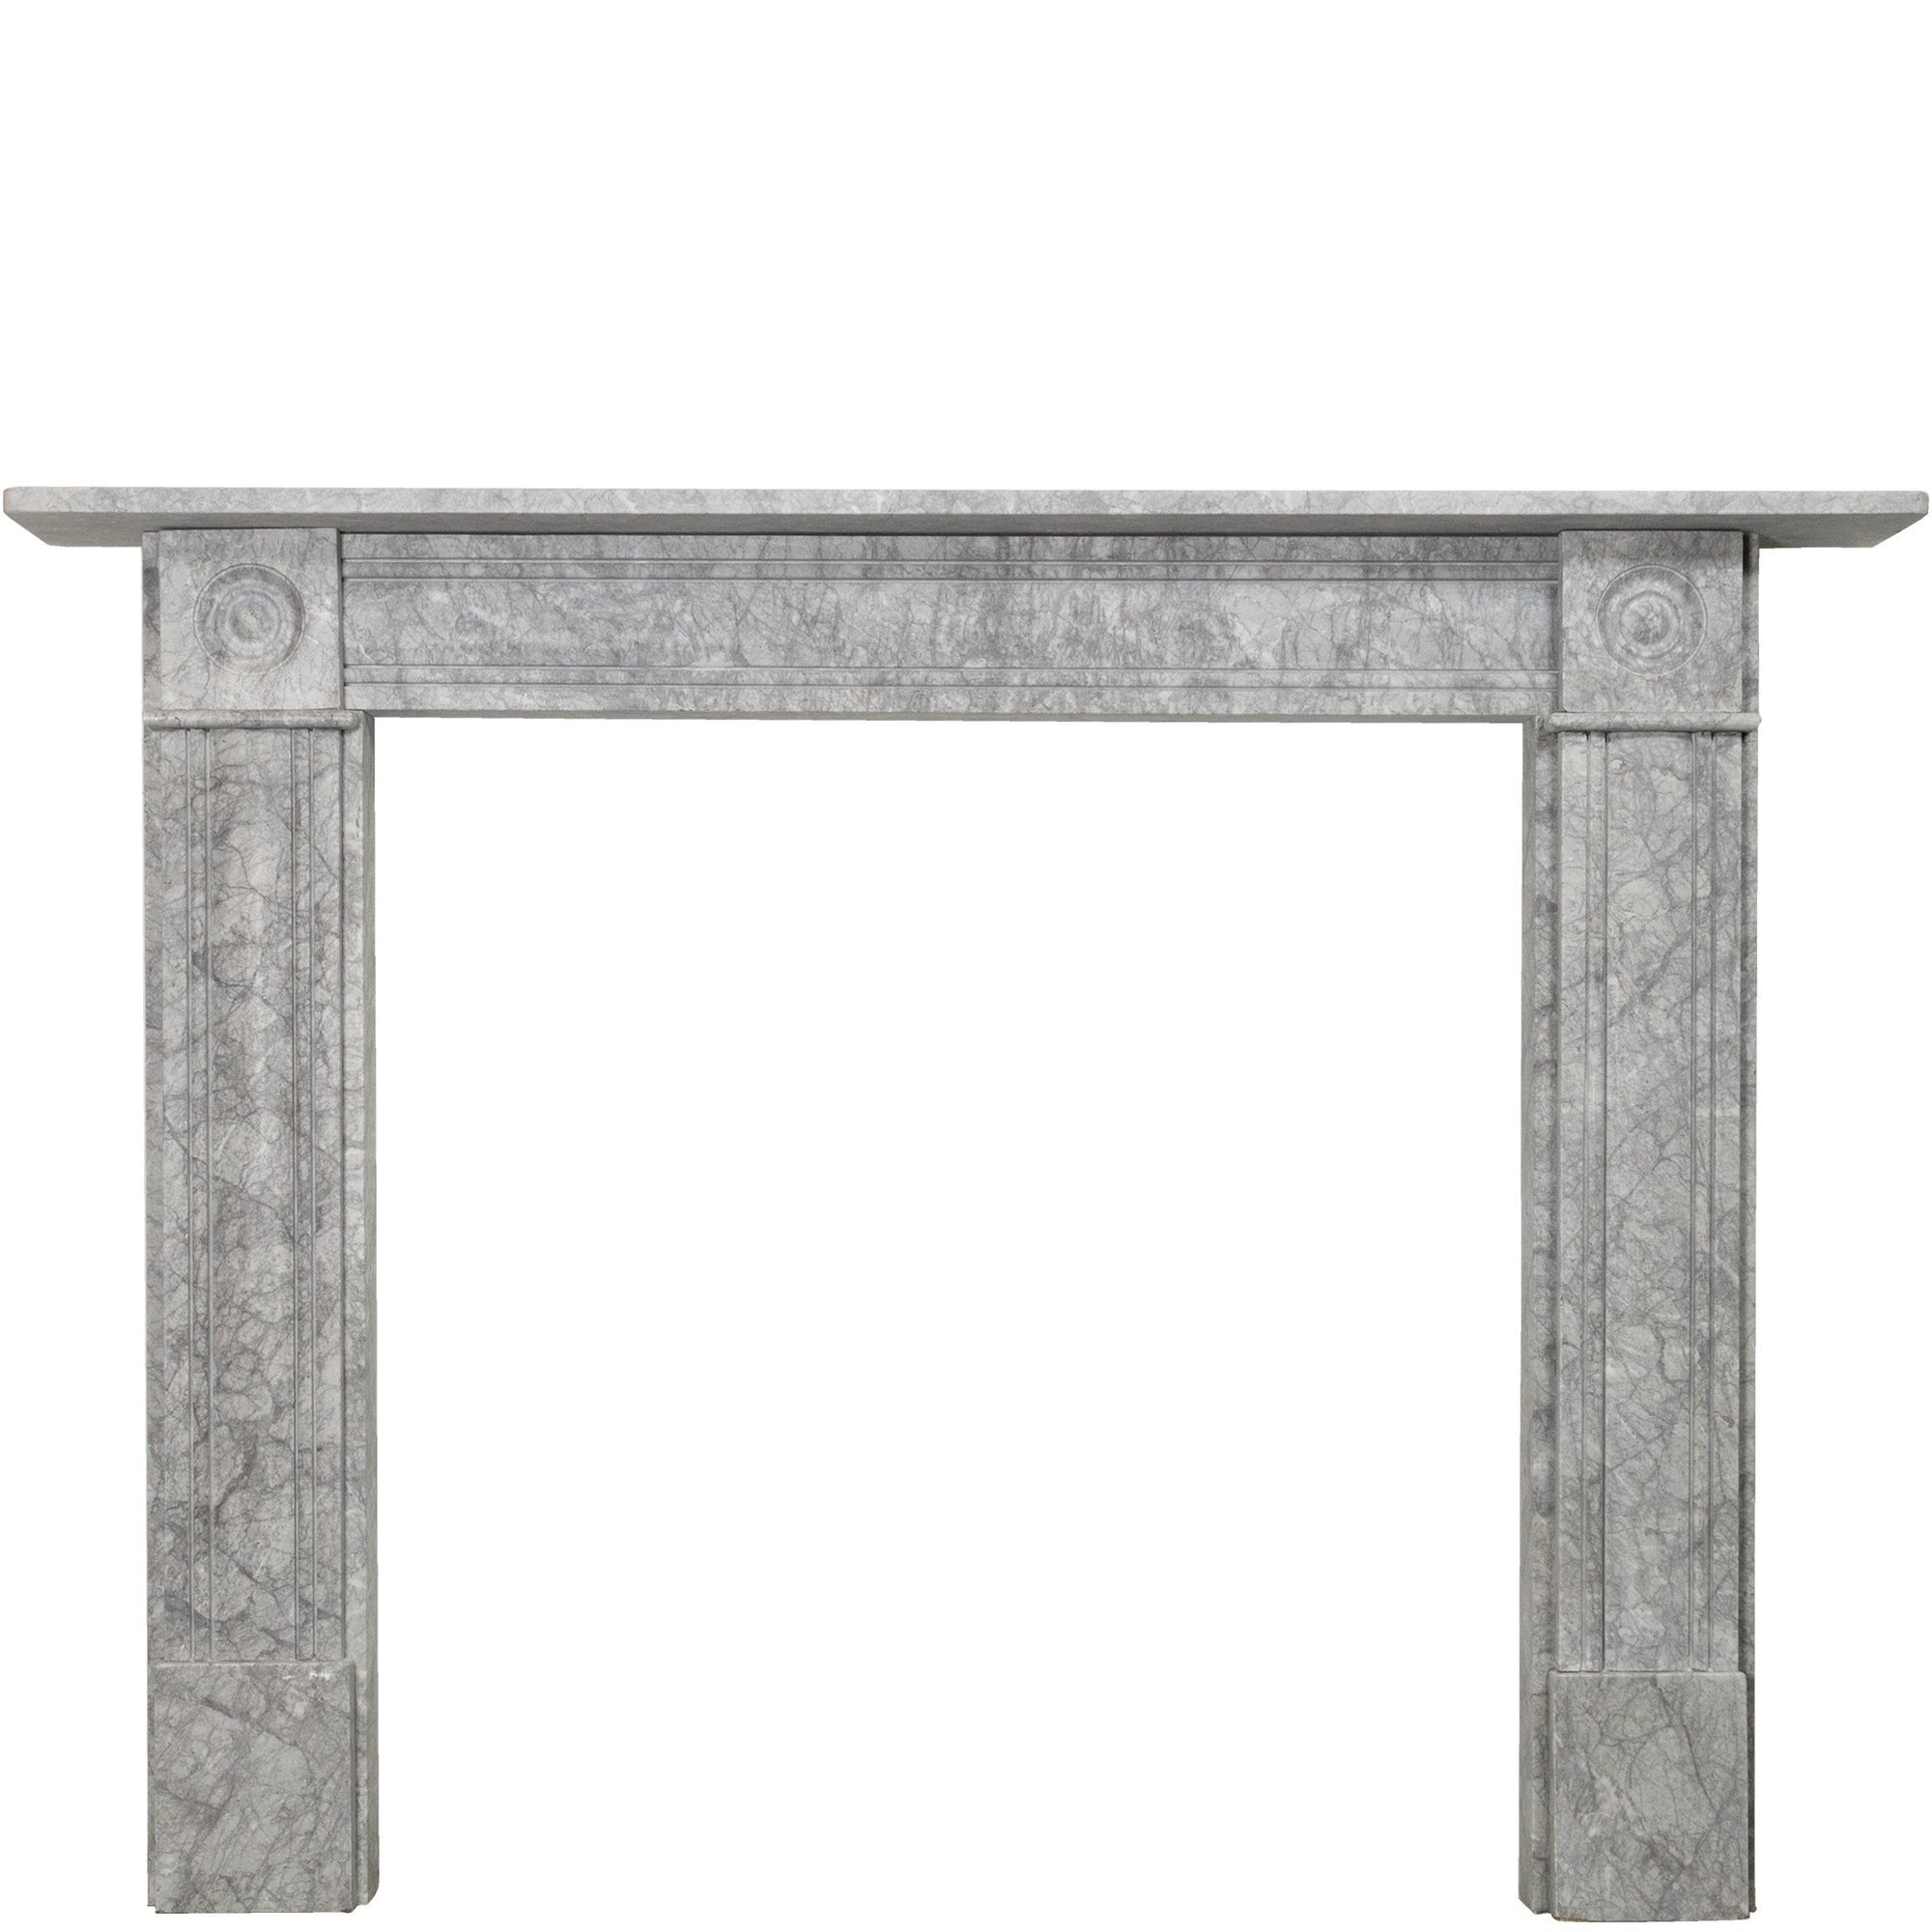 Georgian Style Bullseye Grey Marble Fireplace Surround Vinterior